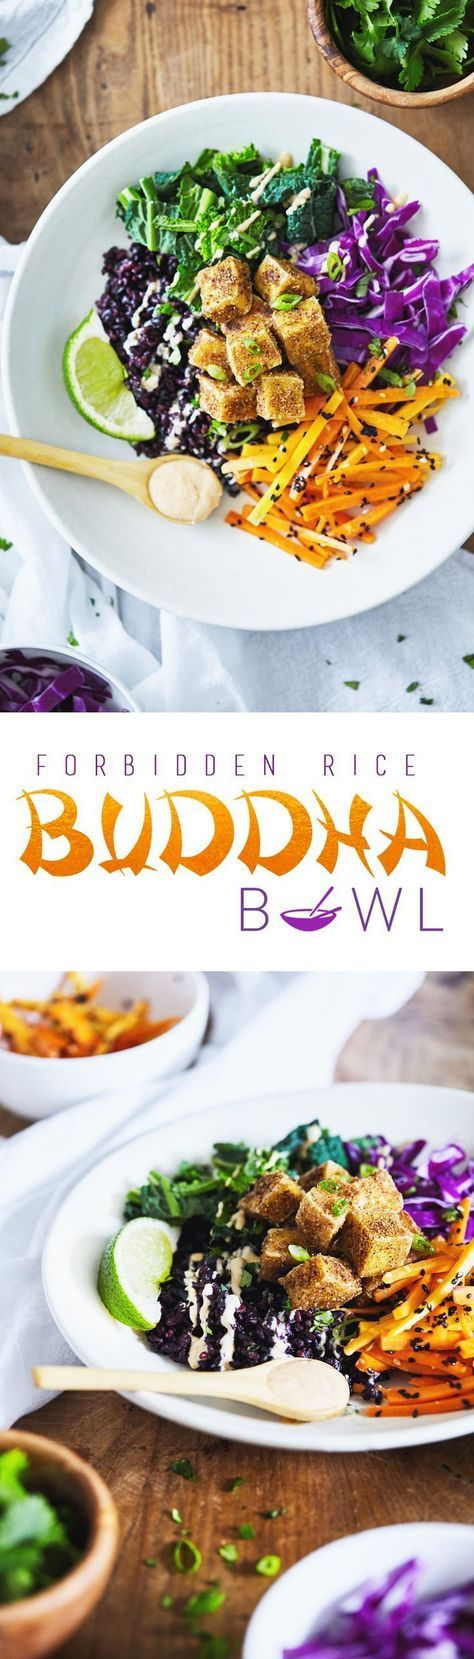 An Asian-inspired Buddha Bowl featuring forbidden rice, crispy spiced tofu and a creamy coconut almond lime dressing. This recipe includes a technique for making the crispiest tofu - without a deep fryer! Vegan & Gluten Free.